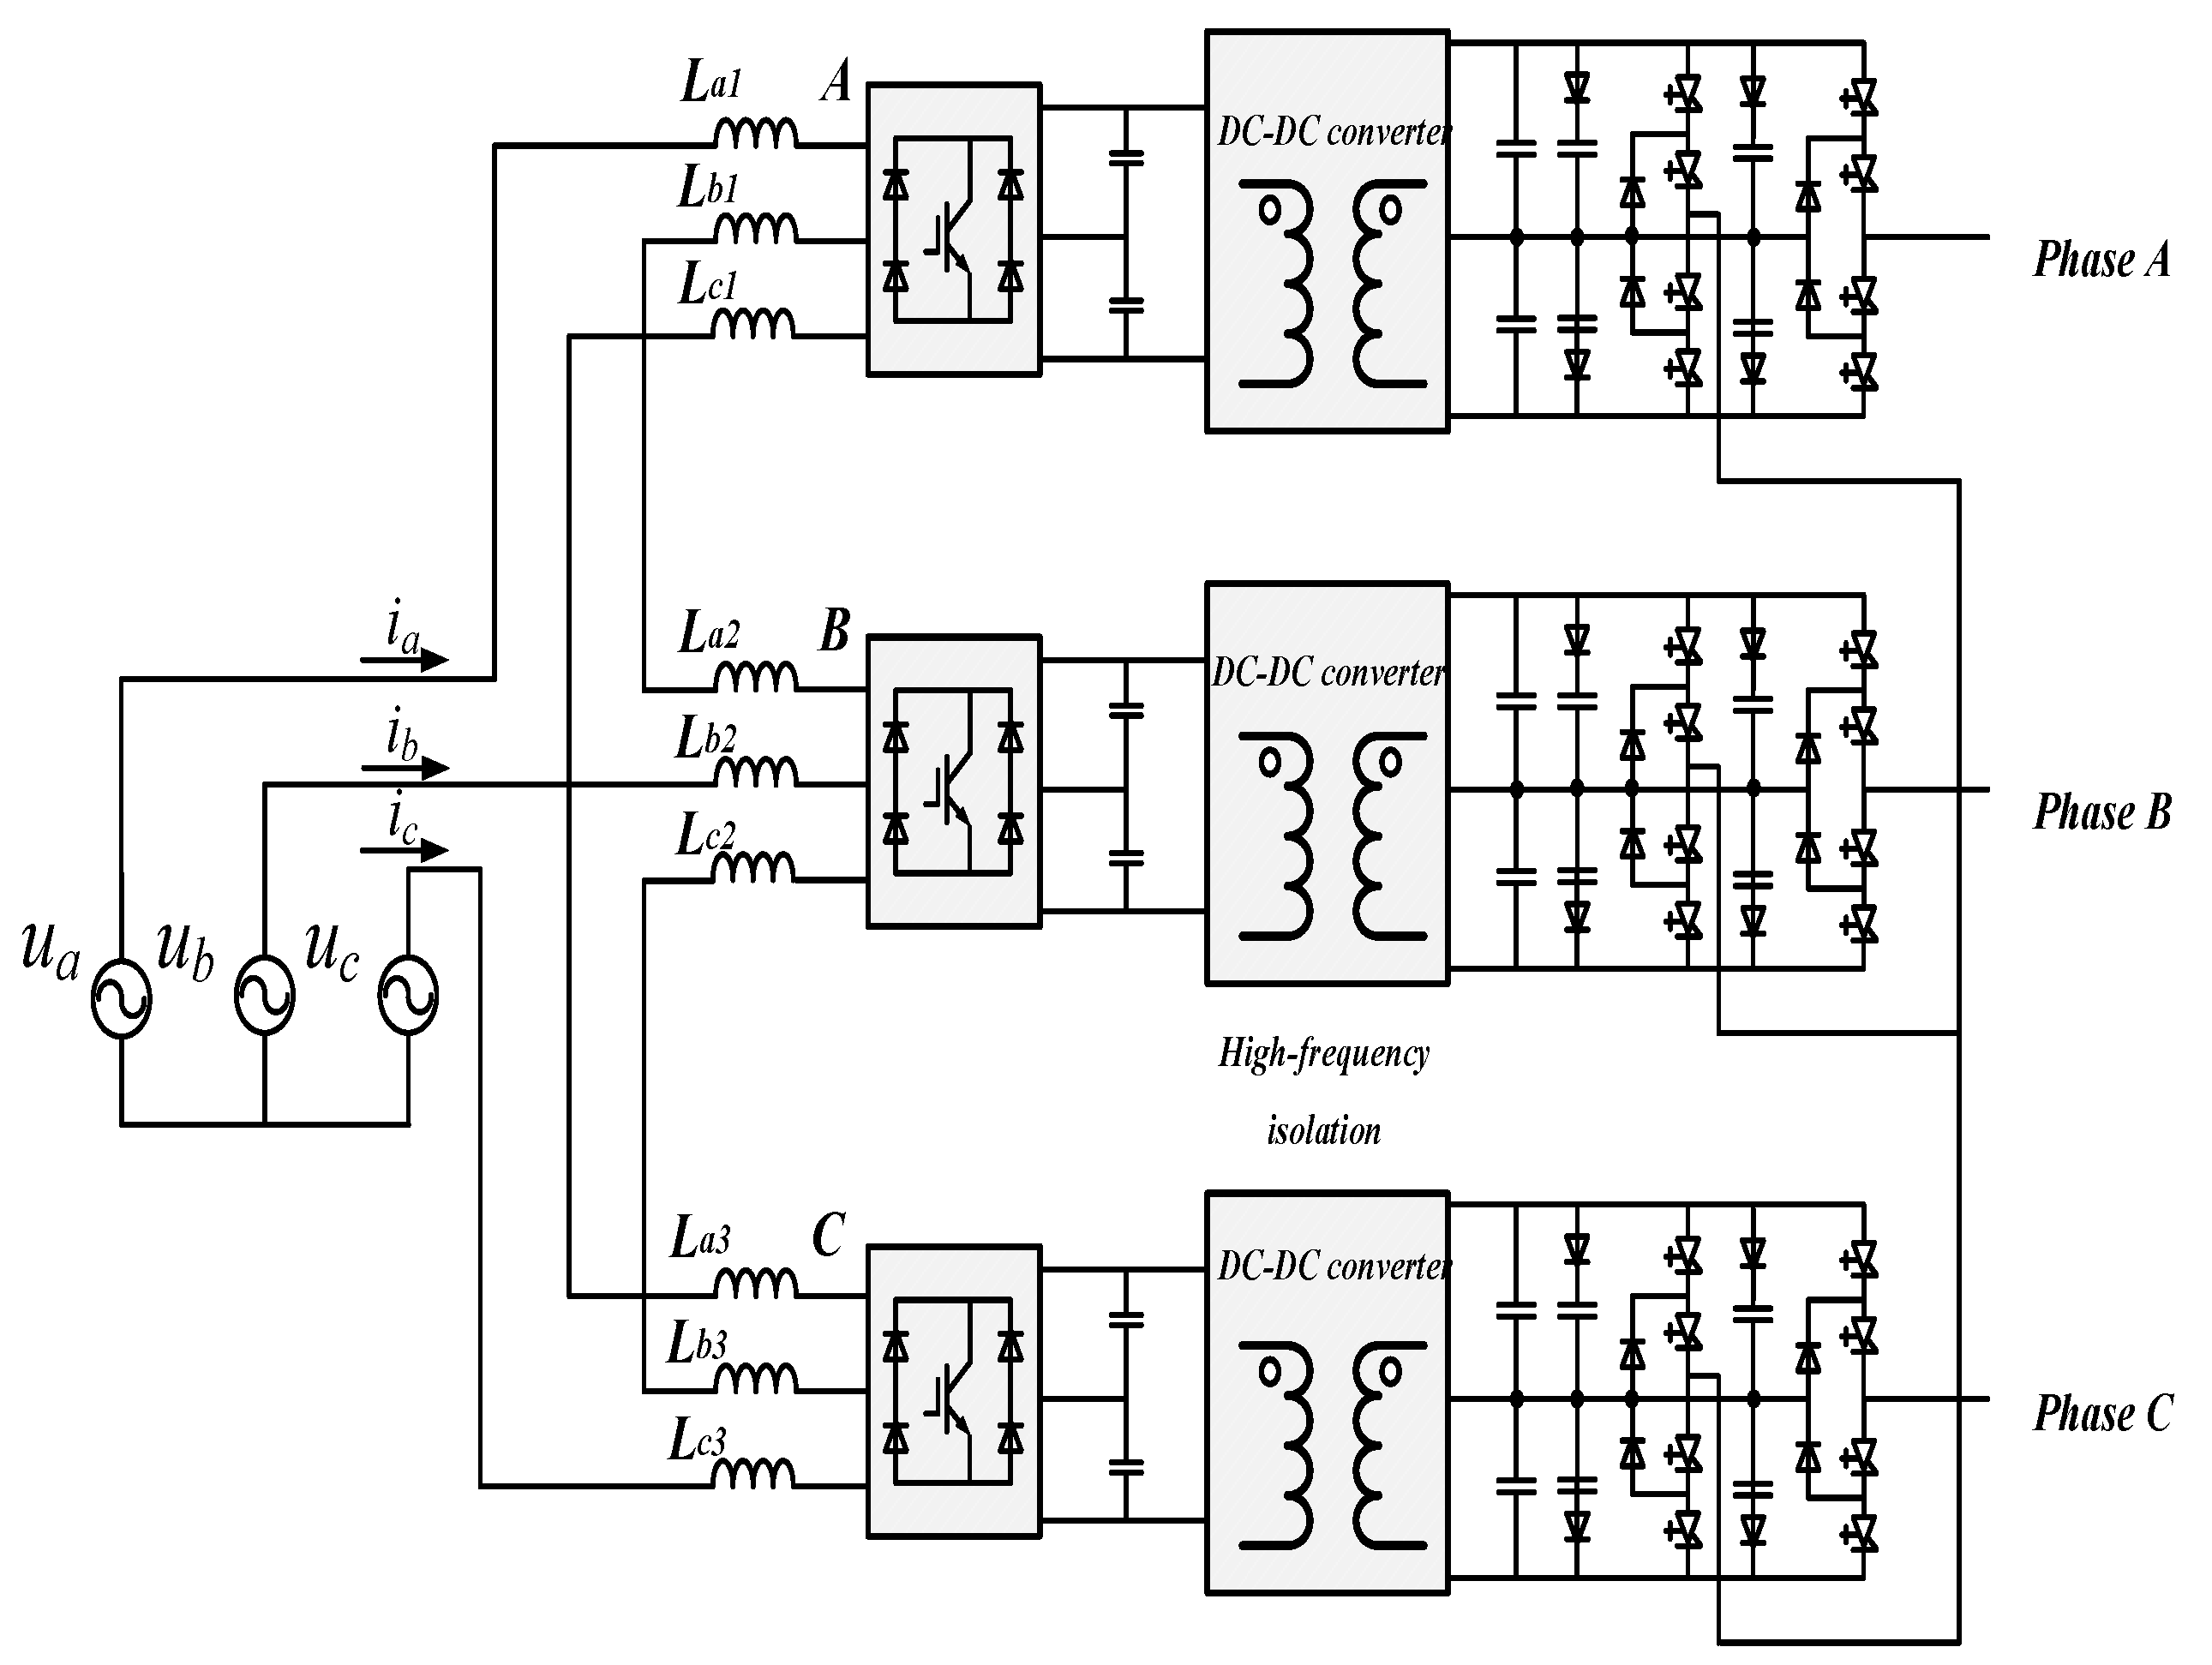 Ronk Add A Phase Wiring Diagram